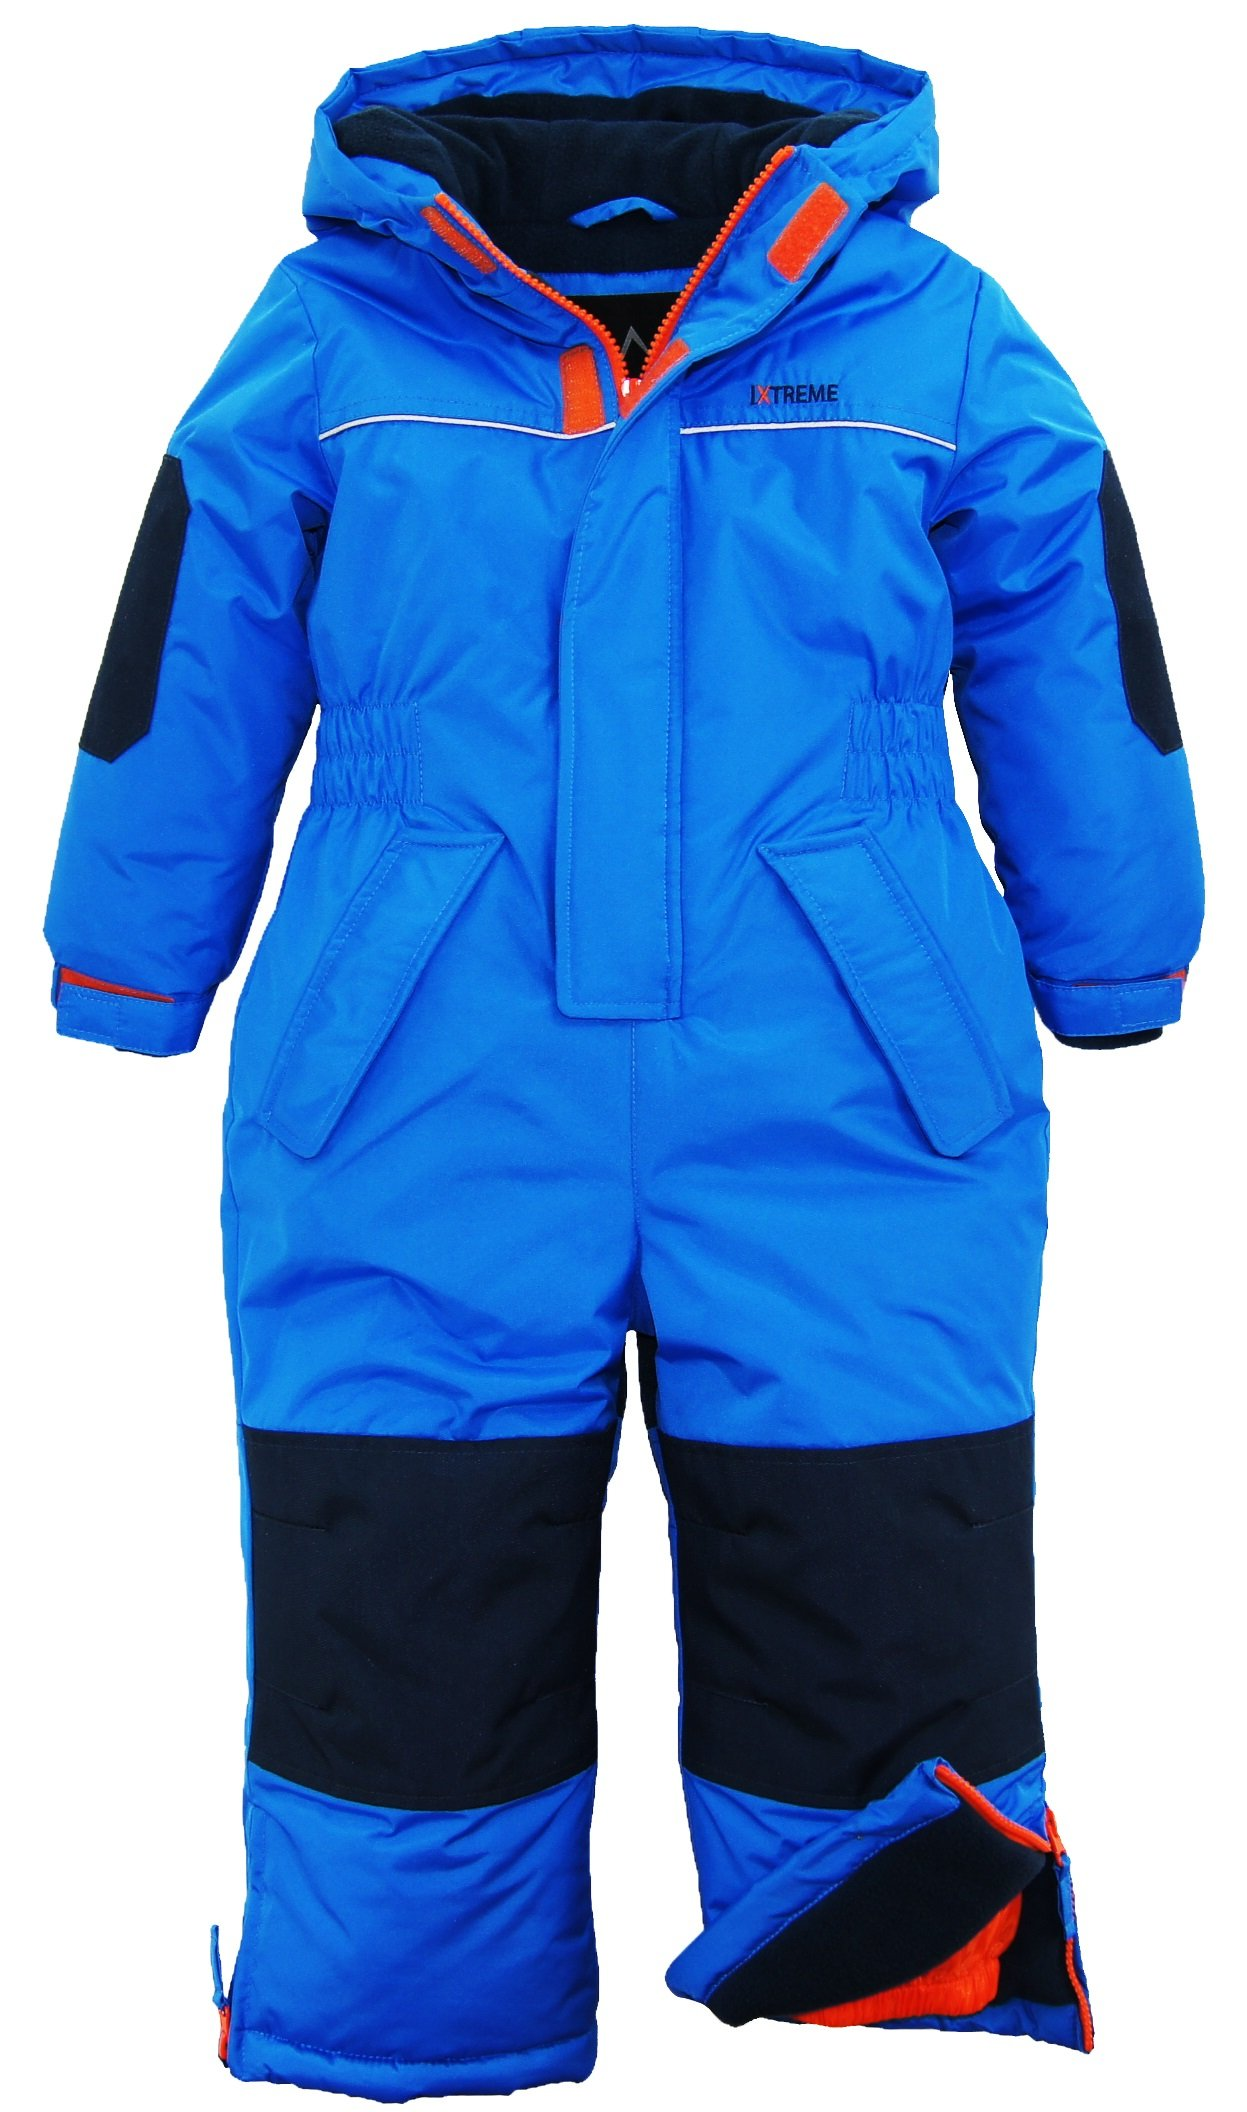 iXtreme Baby Boys Snowmobile One Piece Winter Snowsuit, Blue, 18 Months